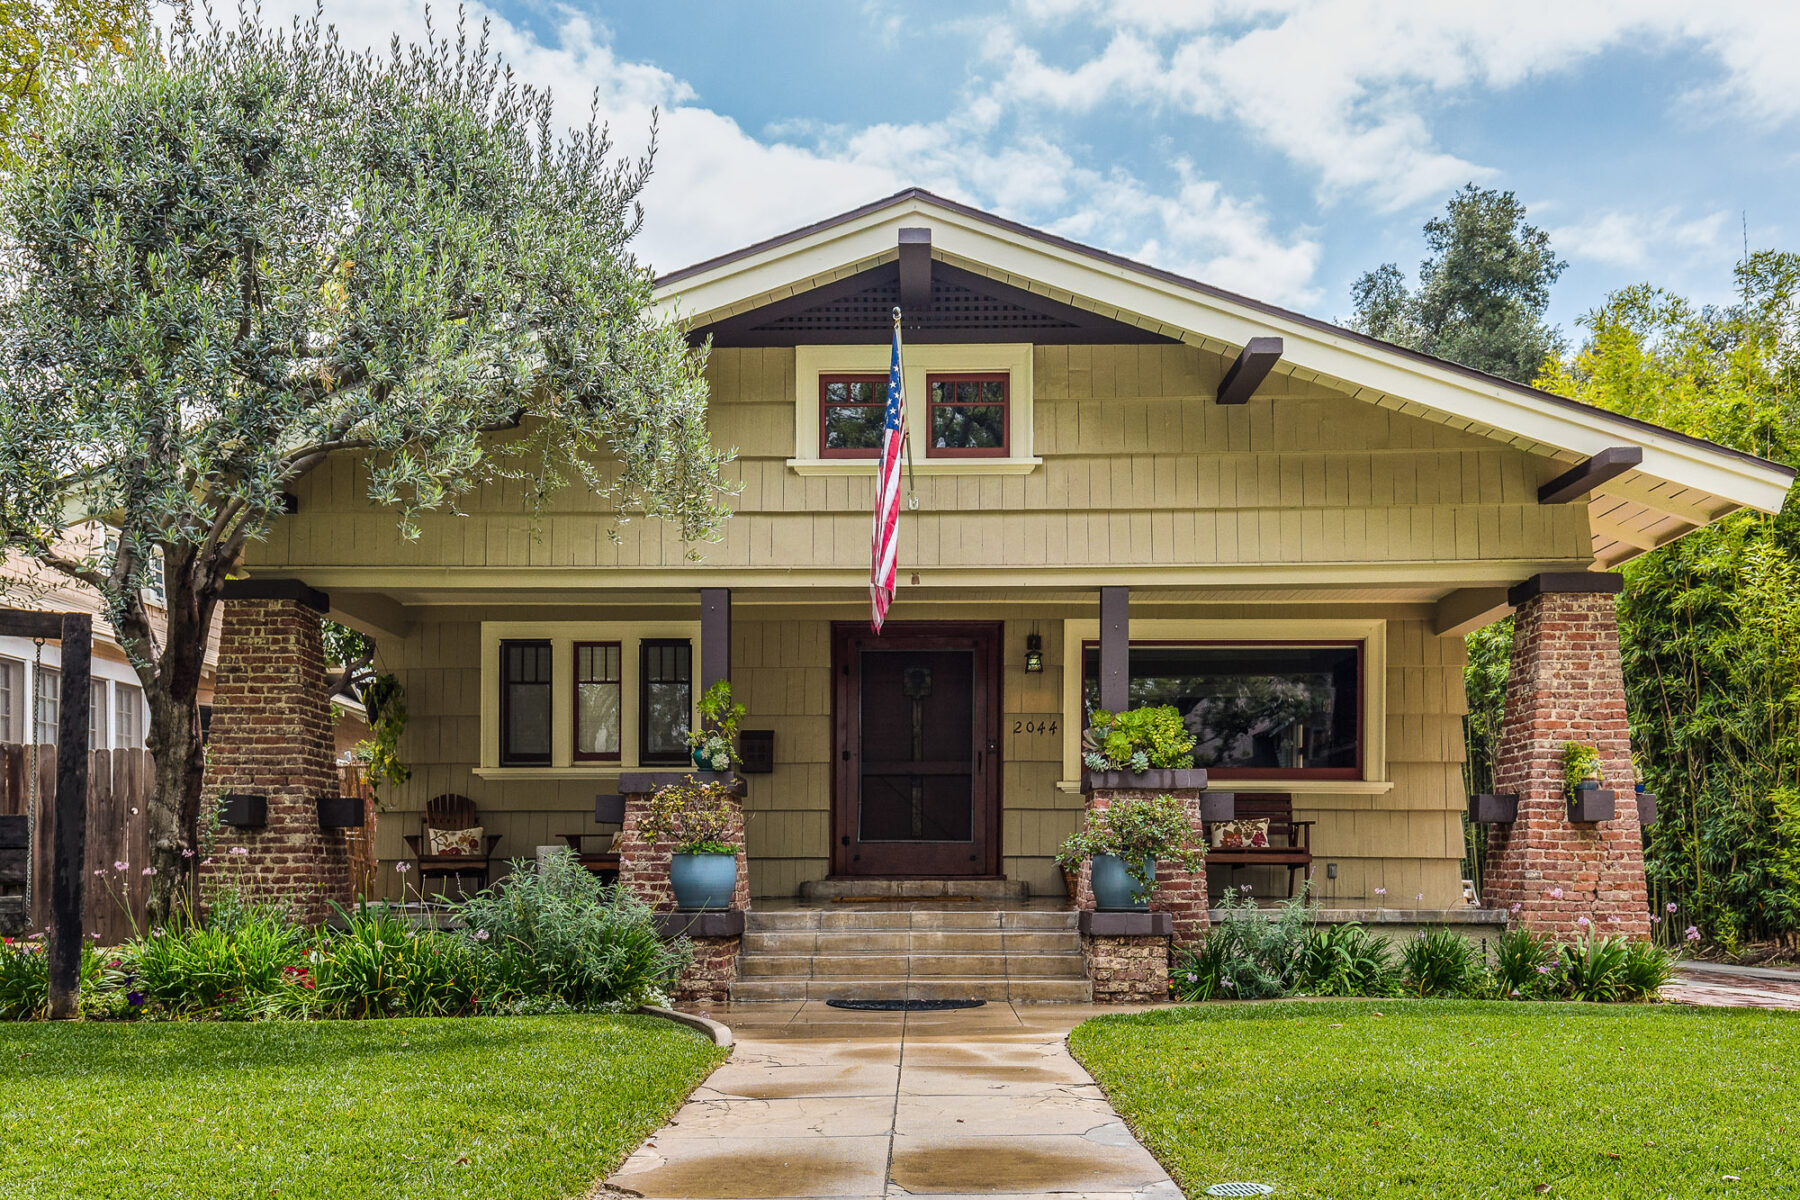 Restored Craftsman With Exposed Brick Columns And Accented Wood Work